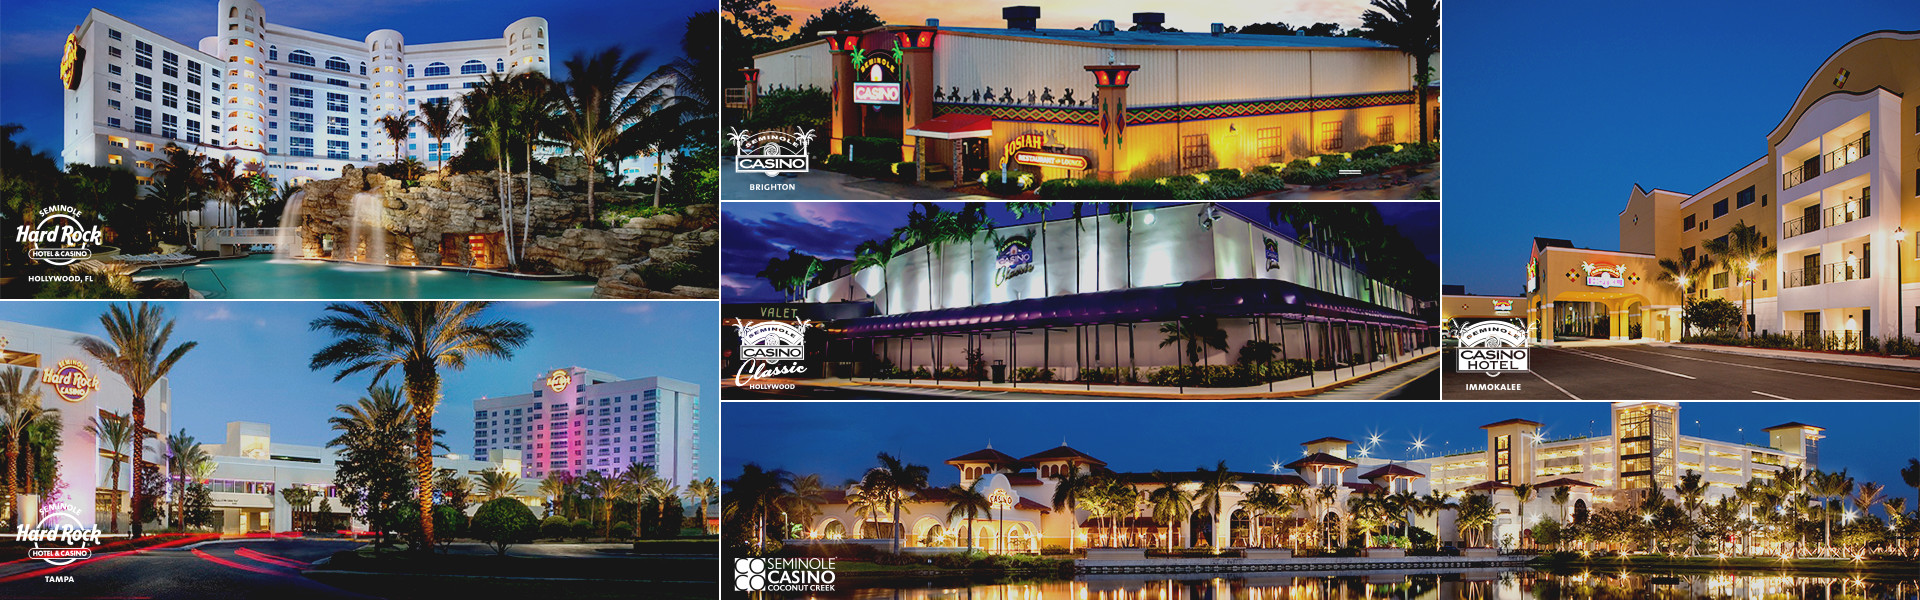 Seminole Gaming Properties